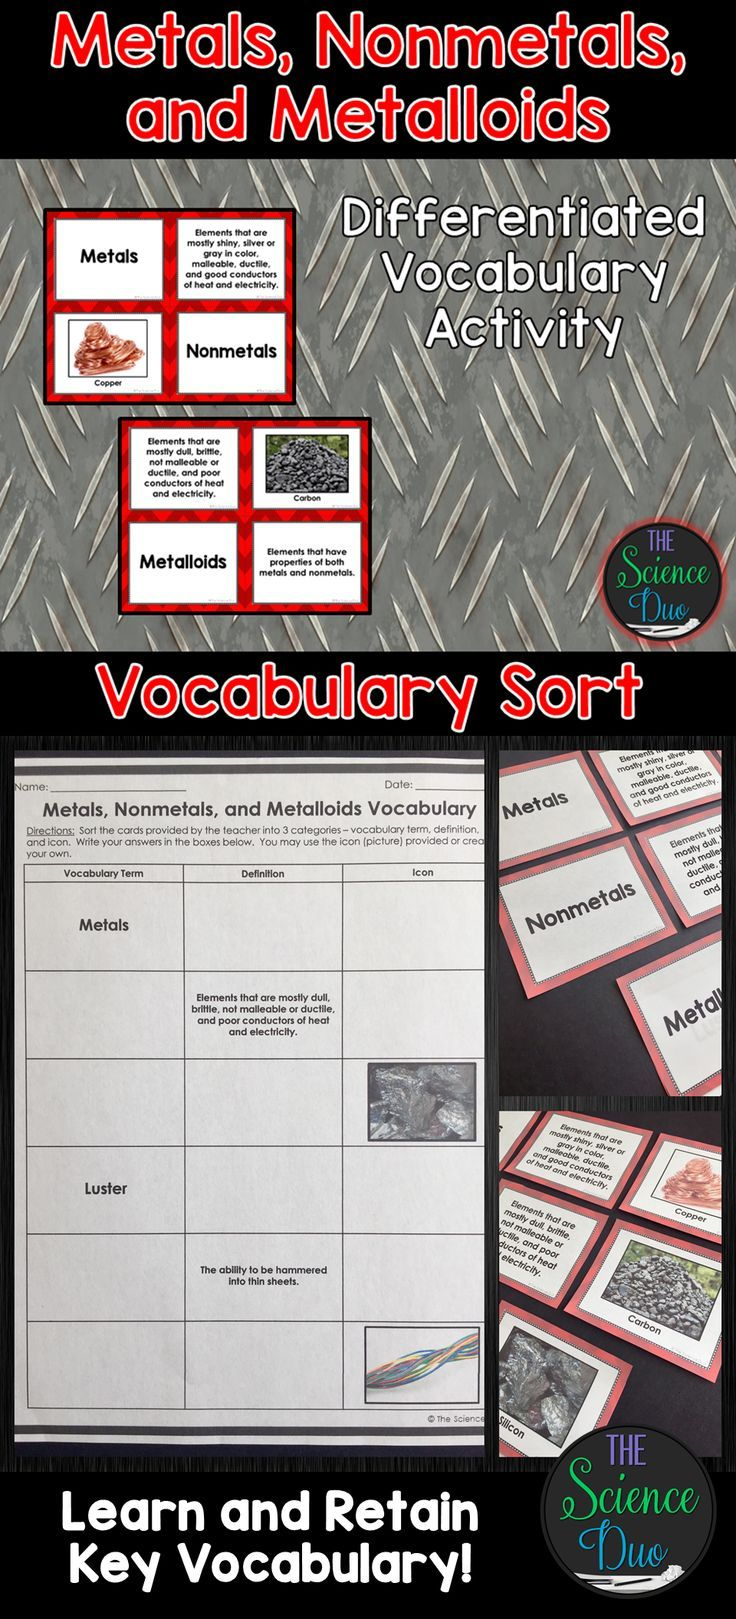 Metals nonmetals and metalloids vocabulary sort chemistry periodic table help your students grasp and retain key chemistry vocabulary with this interactive vocabulary sort activity relating urtaz Gallery